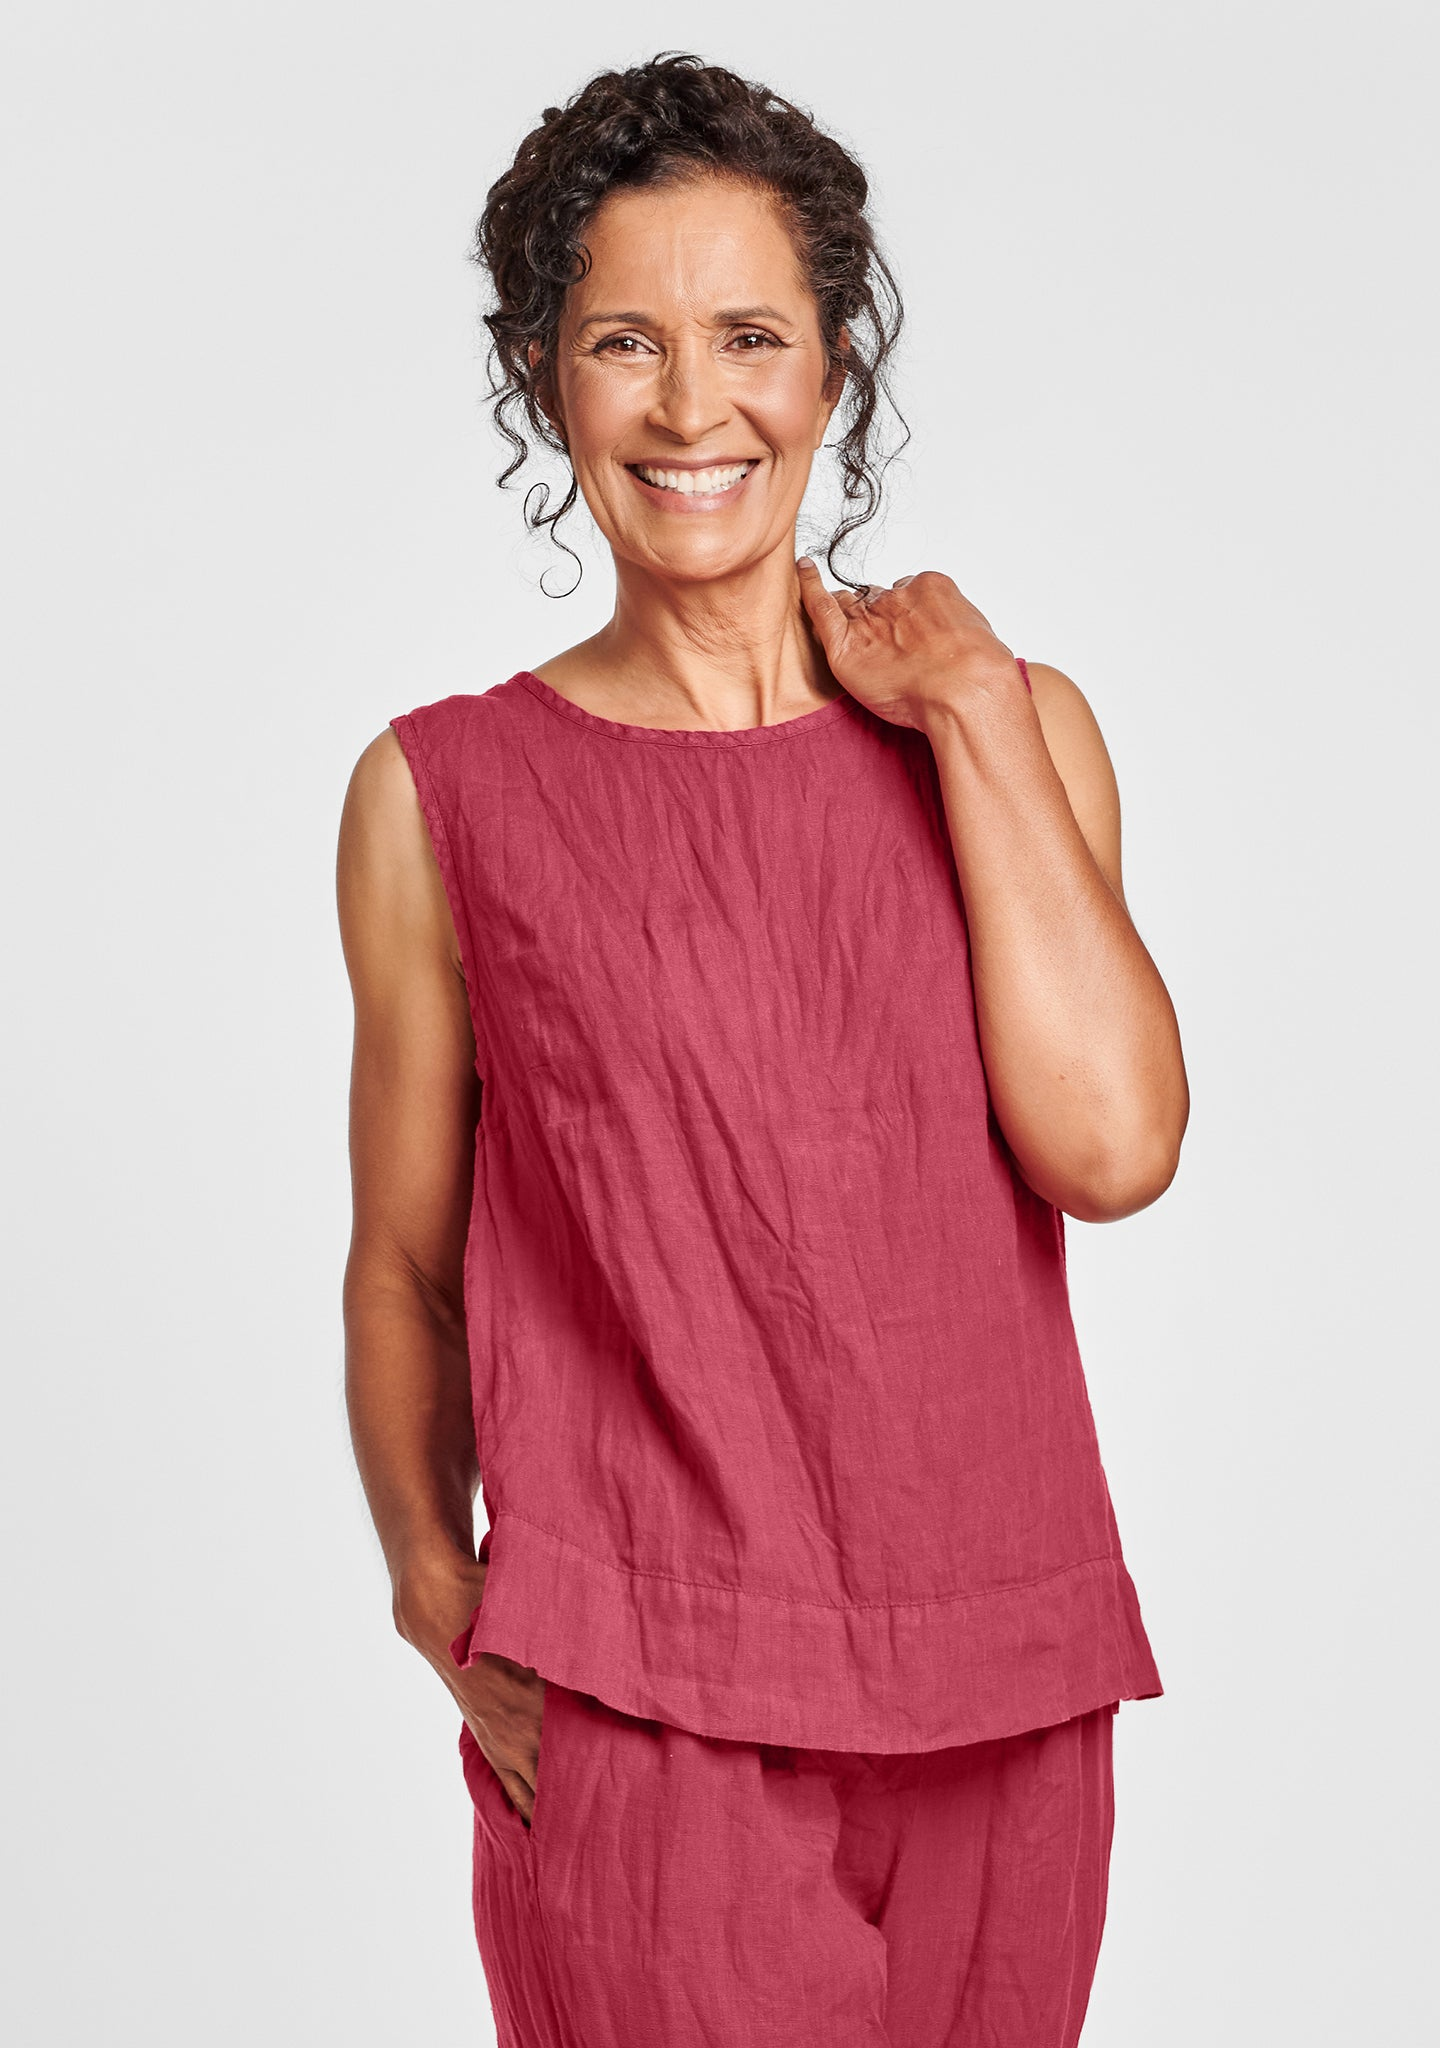 roadie top linen tank top red